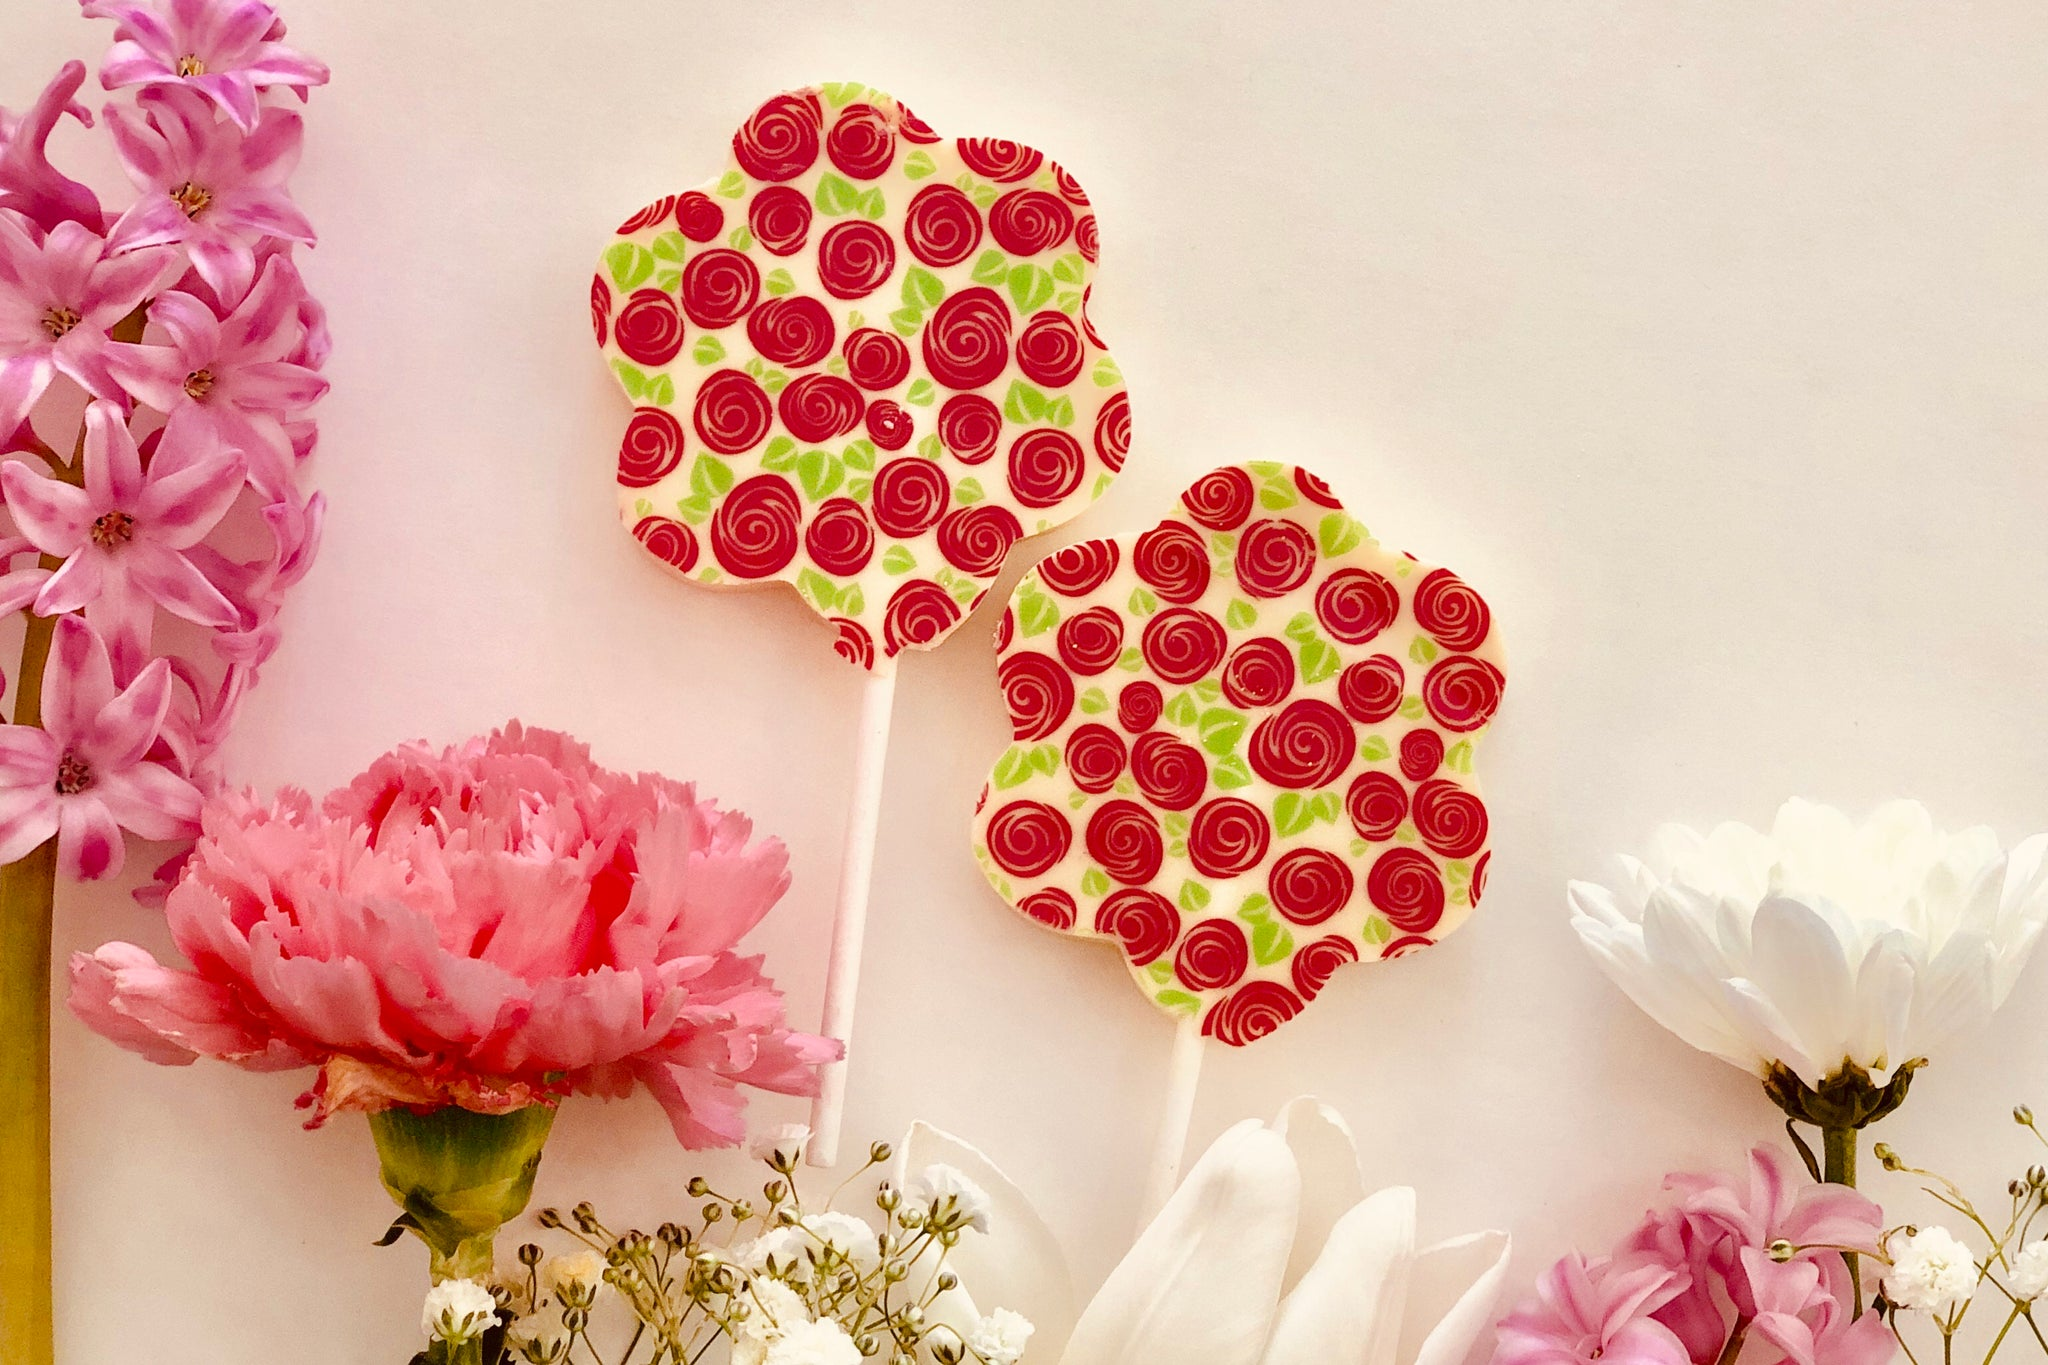 White Chocolate Flower Lollipop